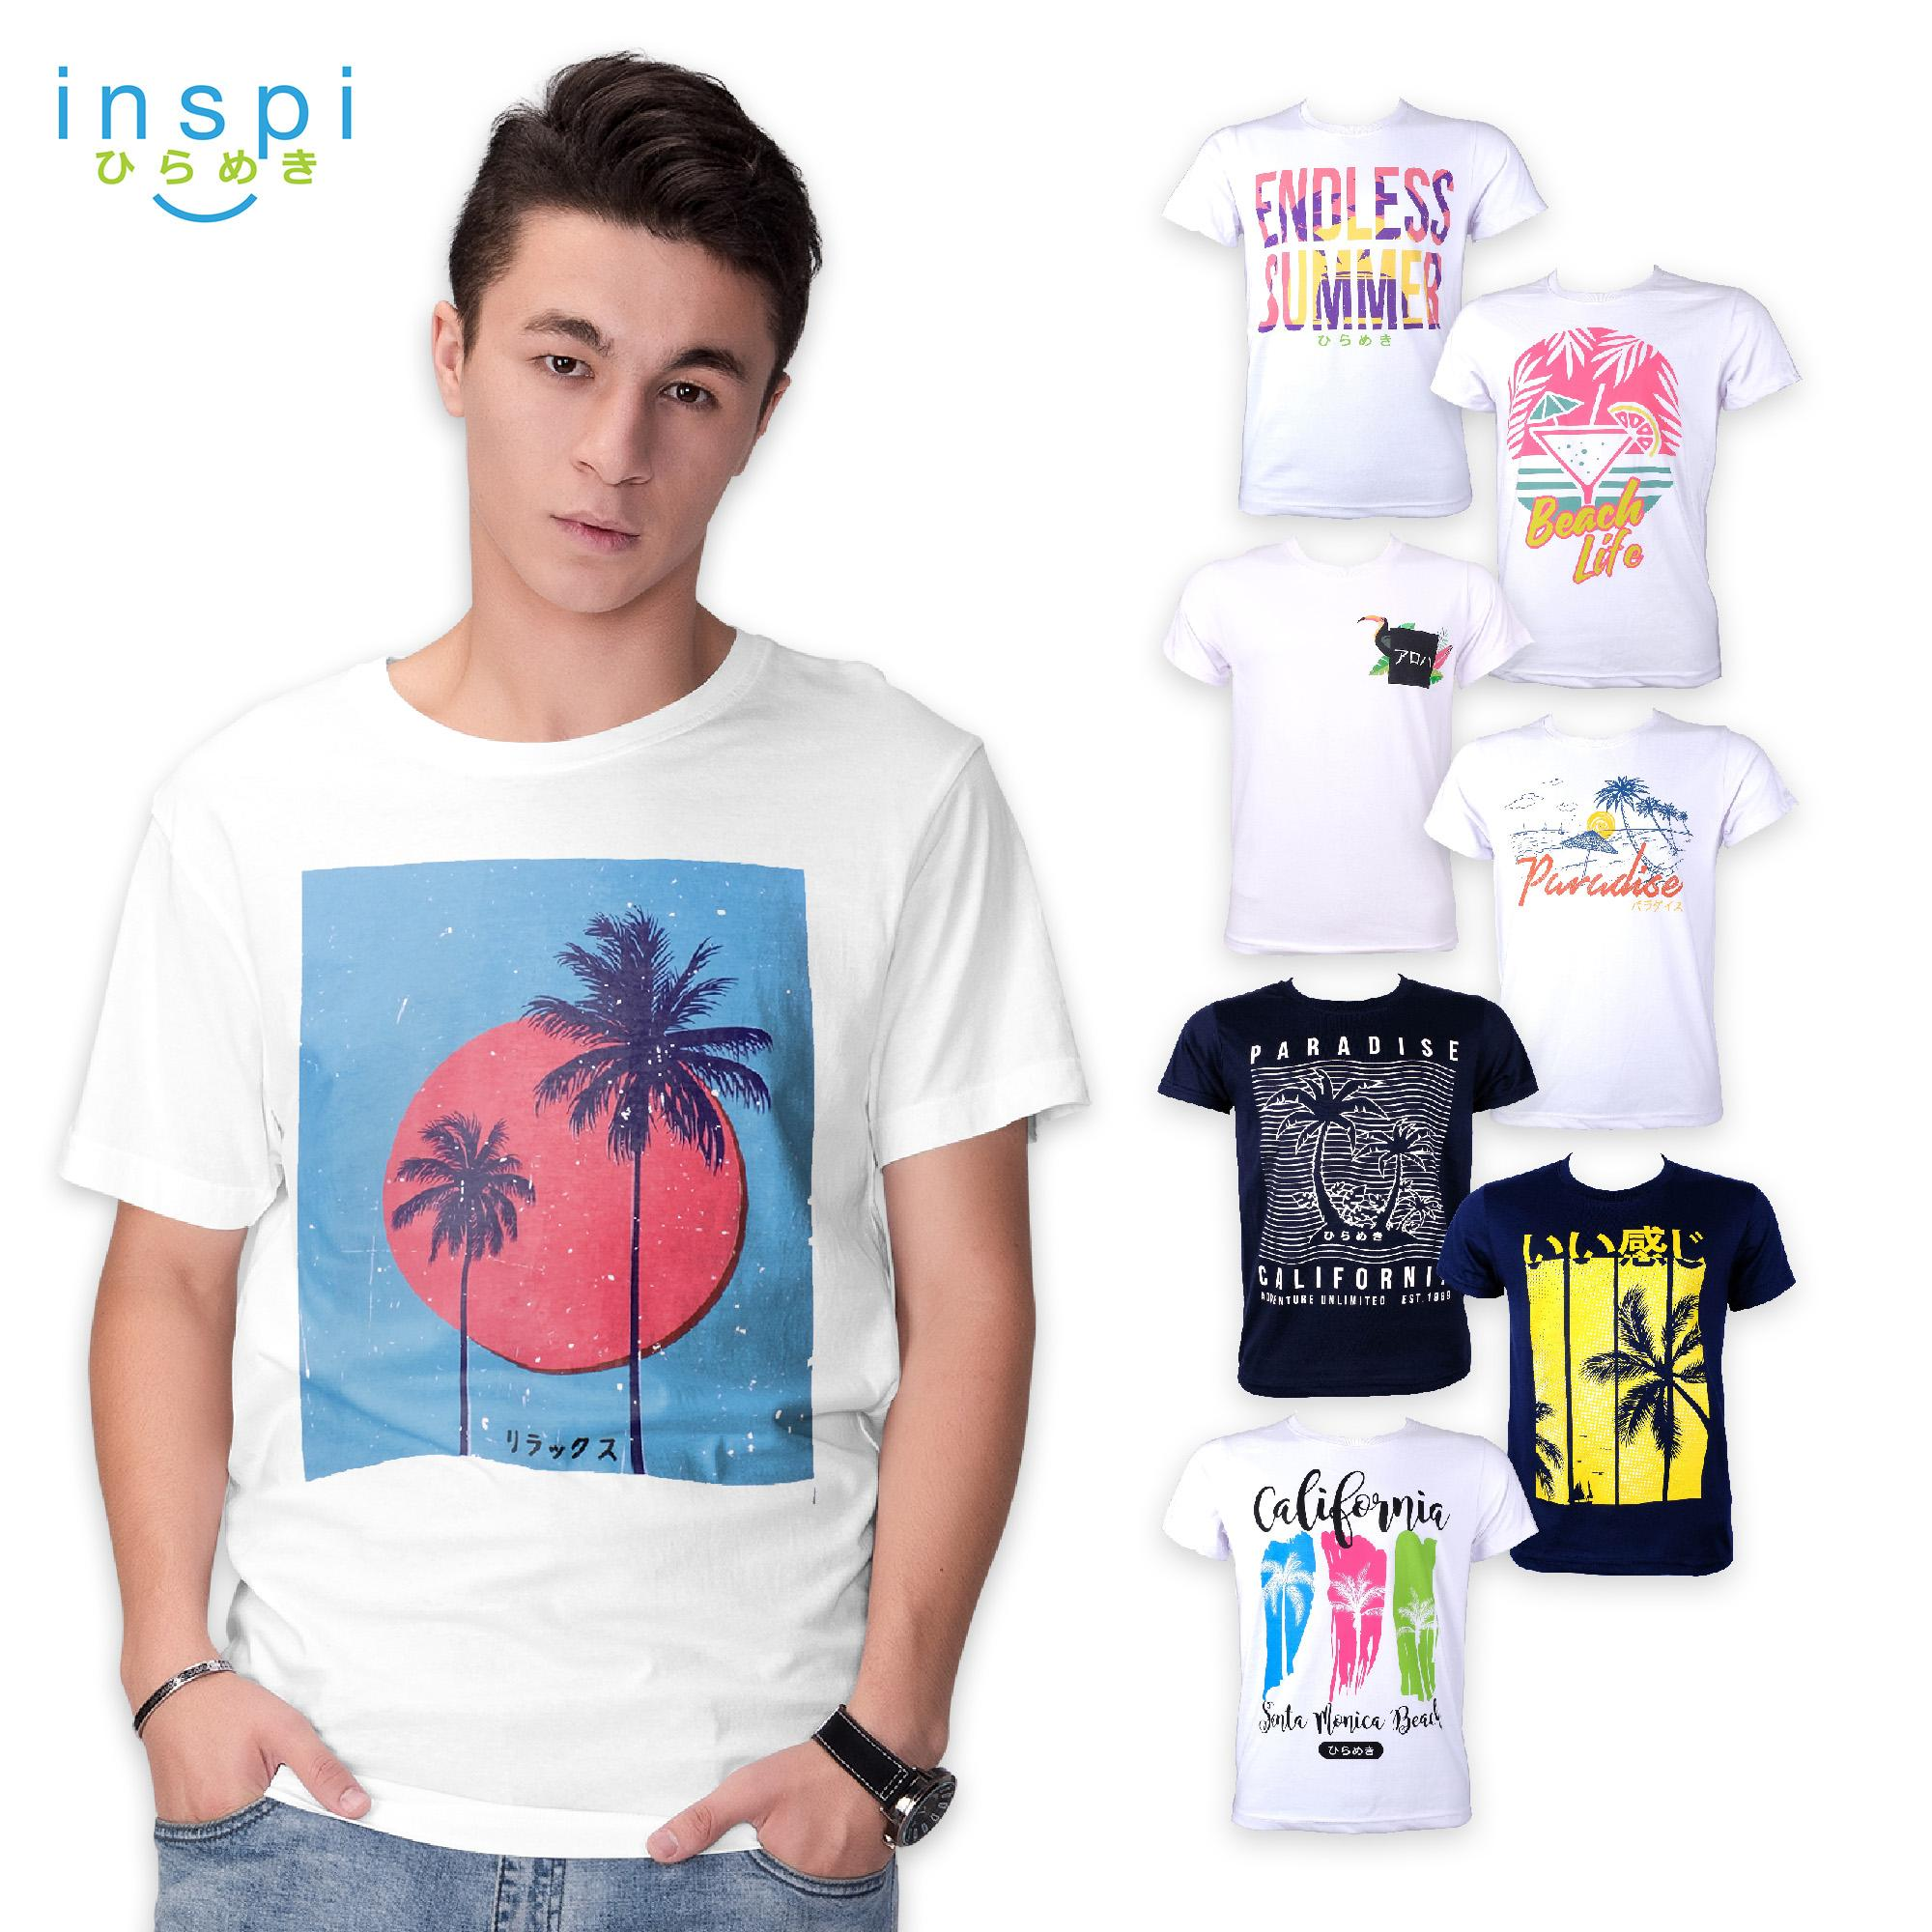 2a81ad93 INSPI Tees Summer Collection tshirt printed graphic tee Mens t shirt shirts  for men tshirts sale